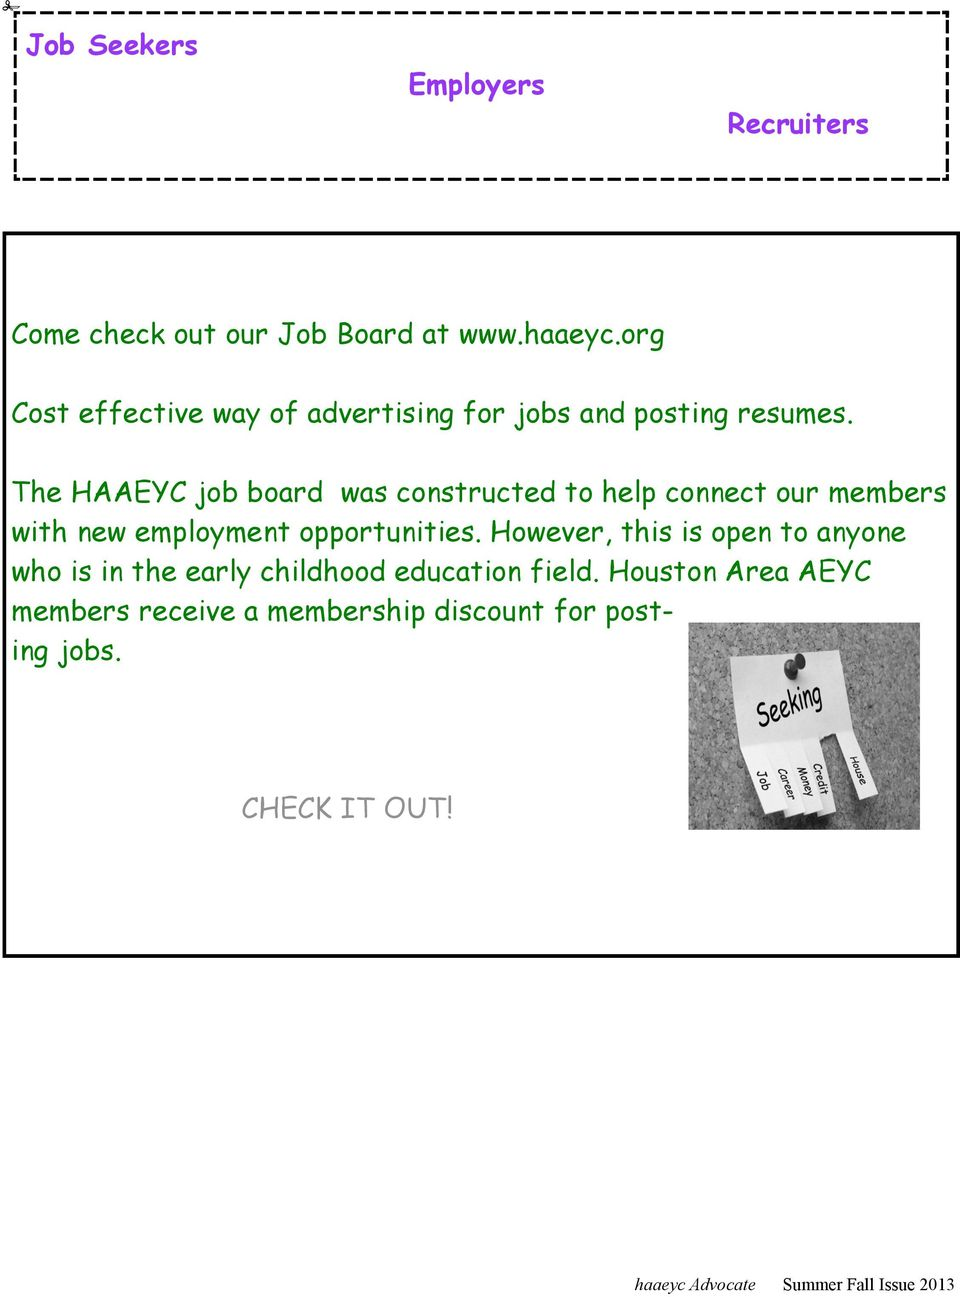 The HAAEYC job board was constructed to help connect our members with new employment opportunities.